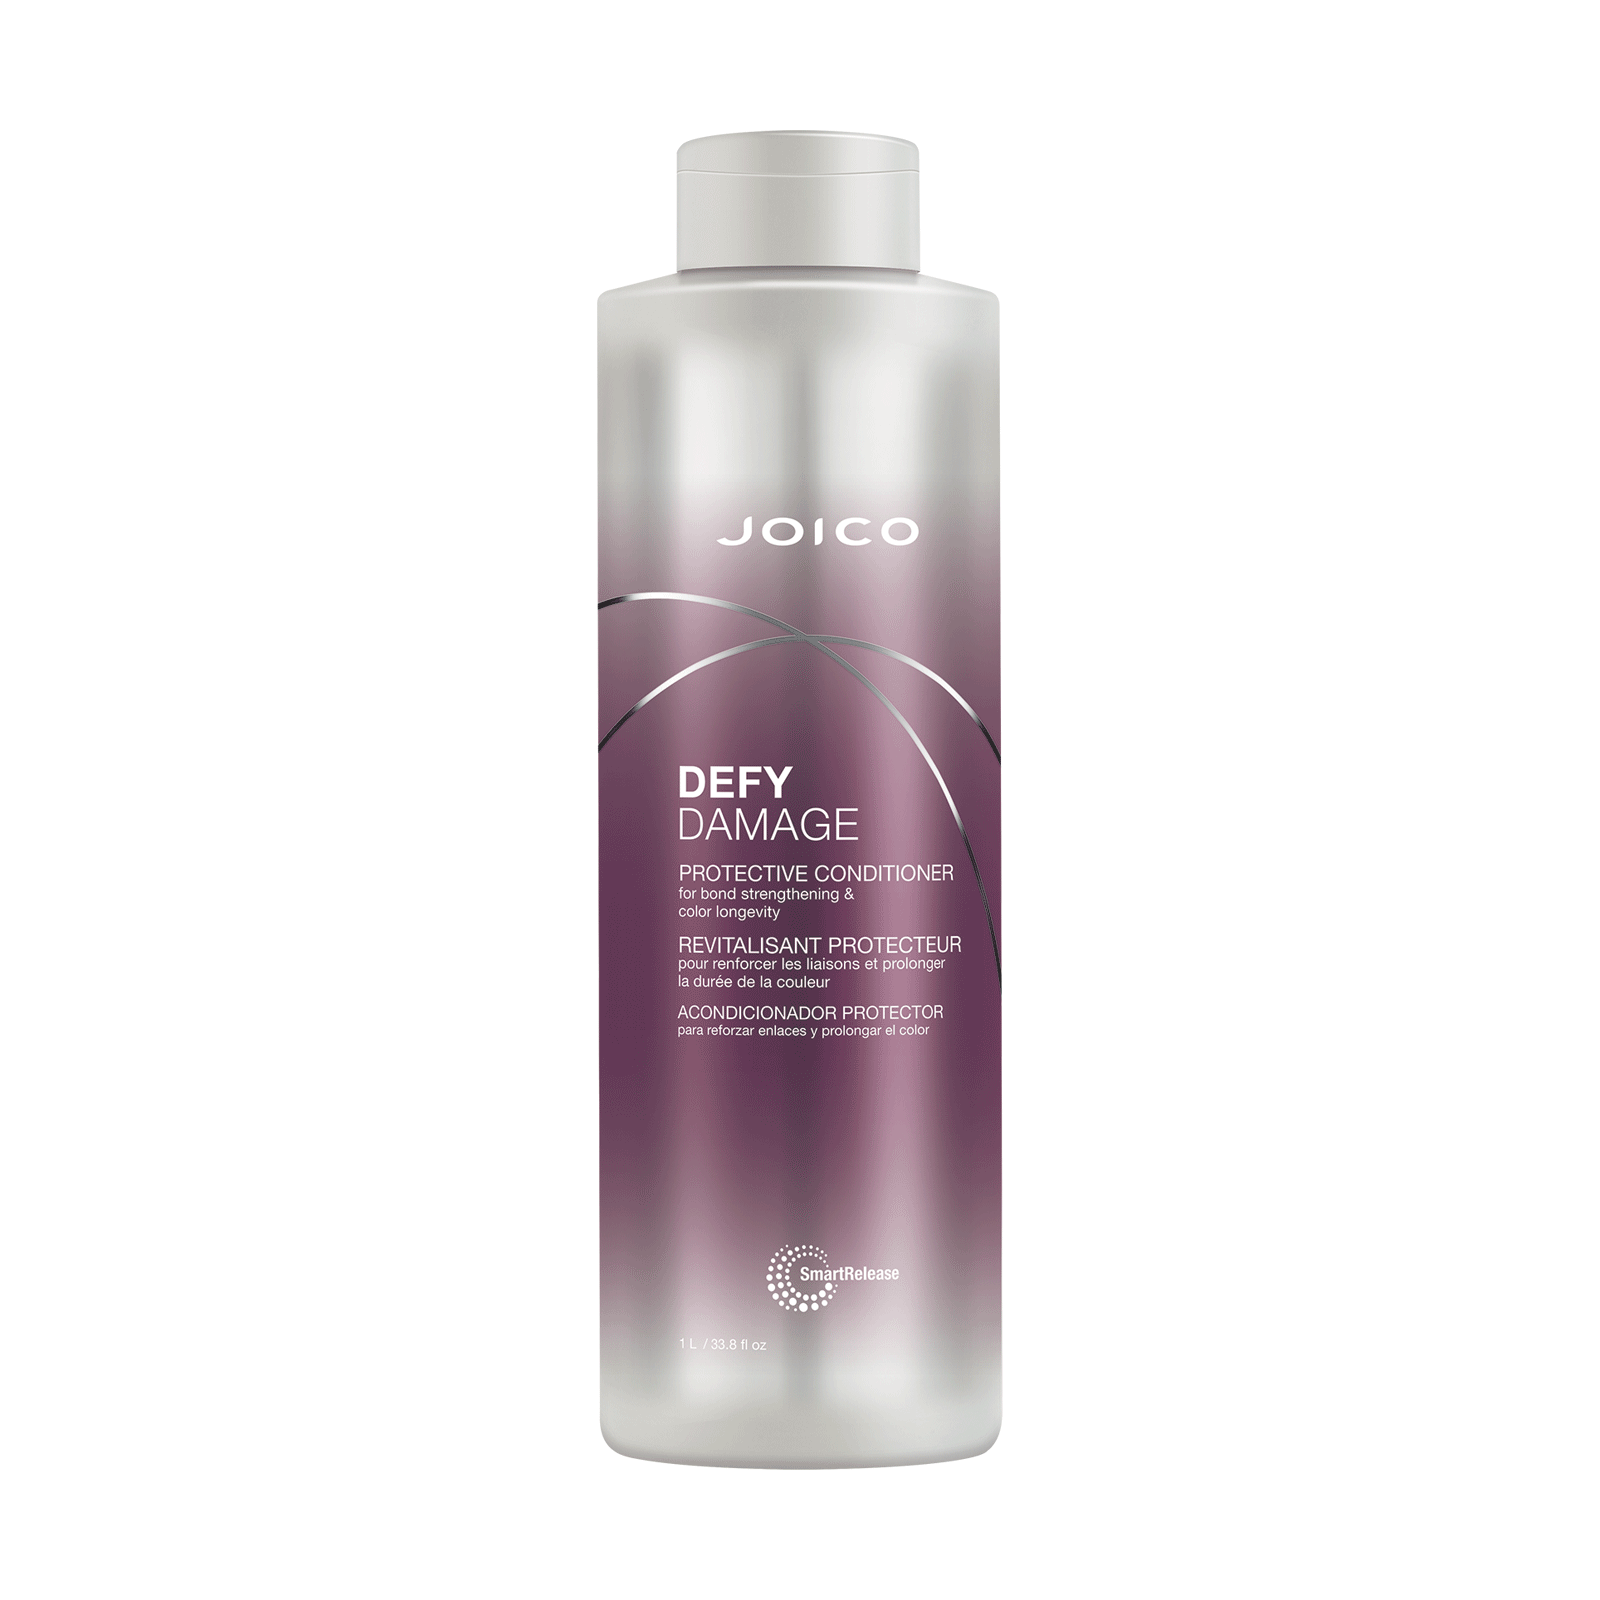 Defy Damage Protective Conditioner